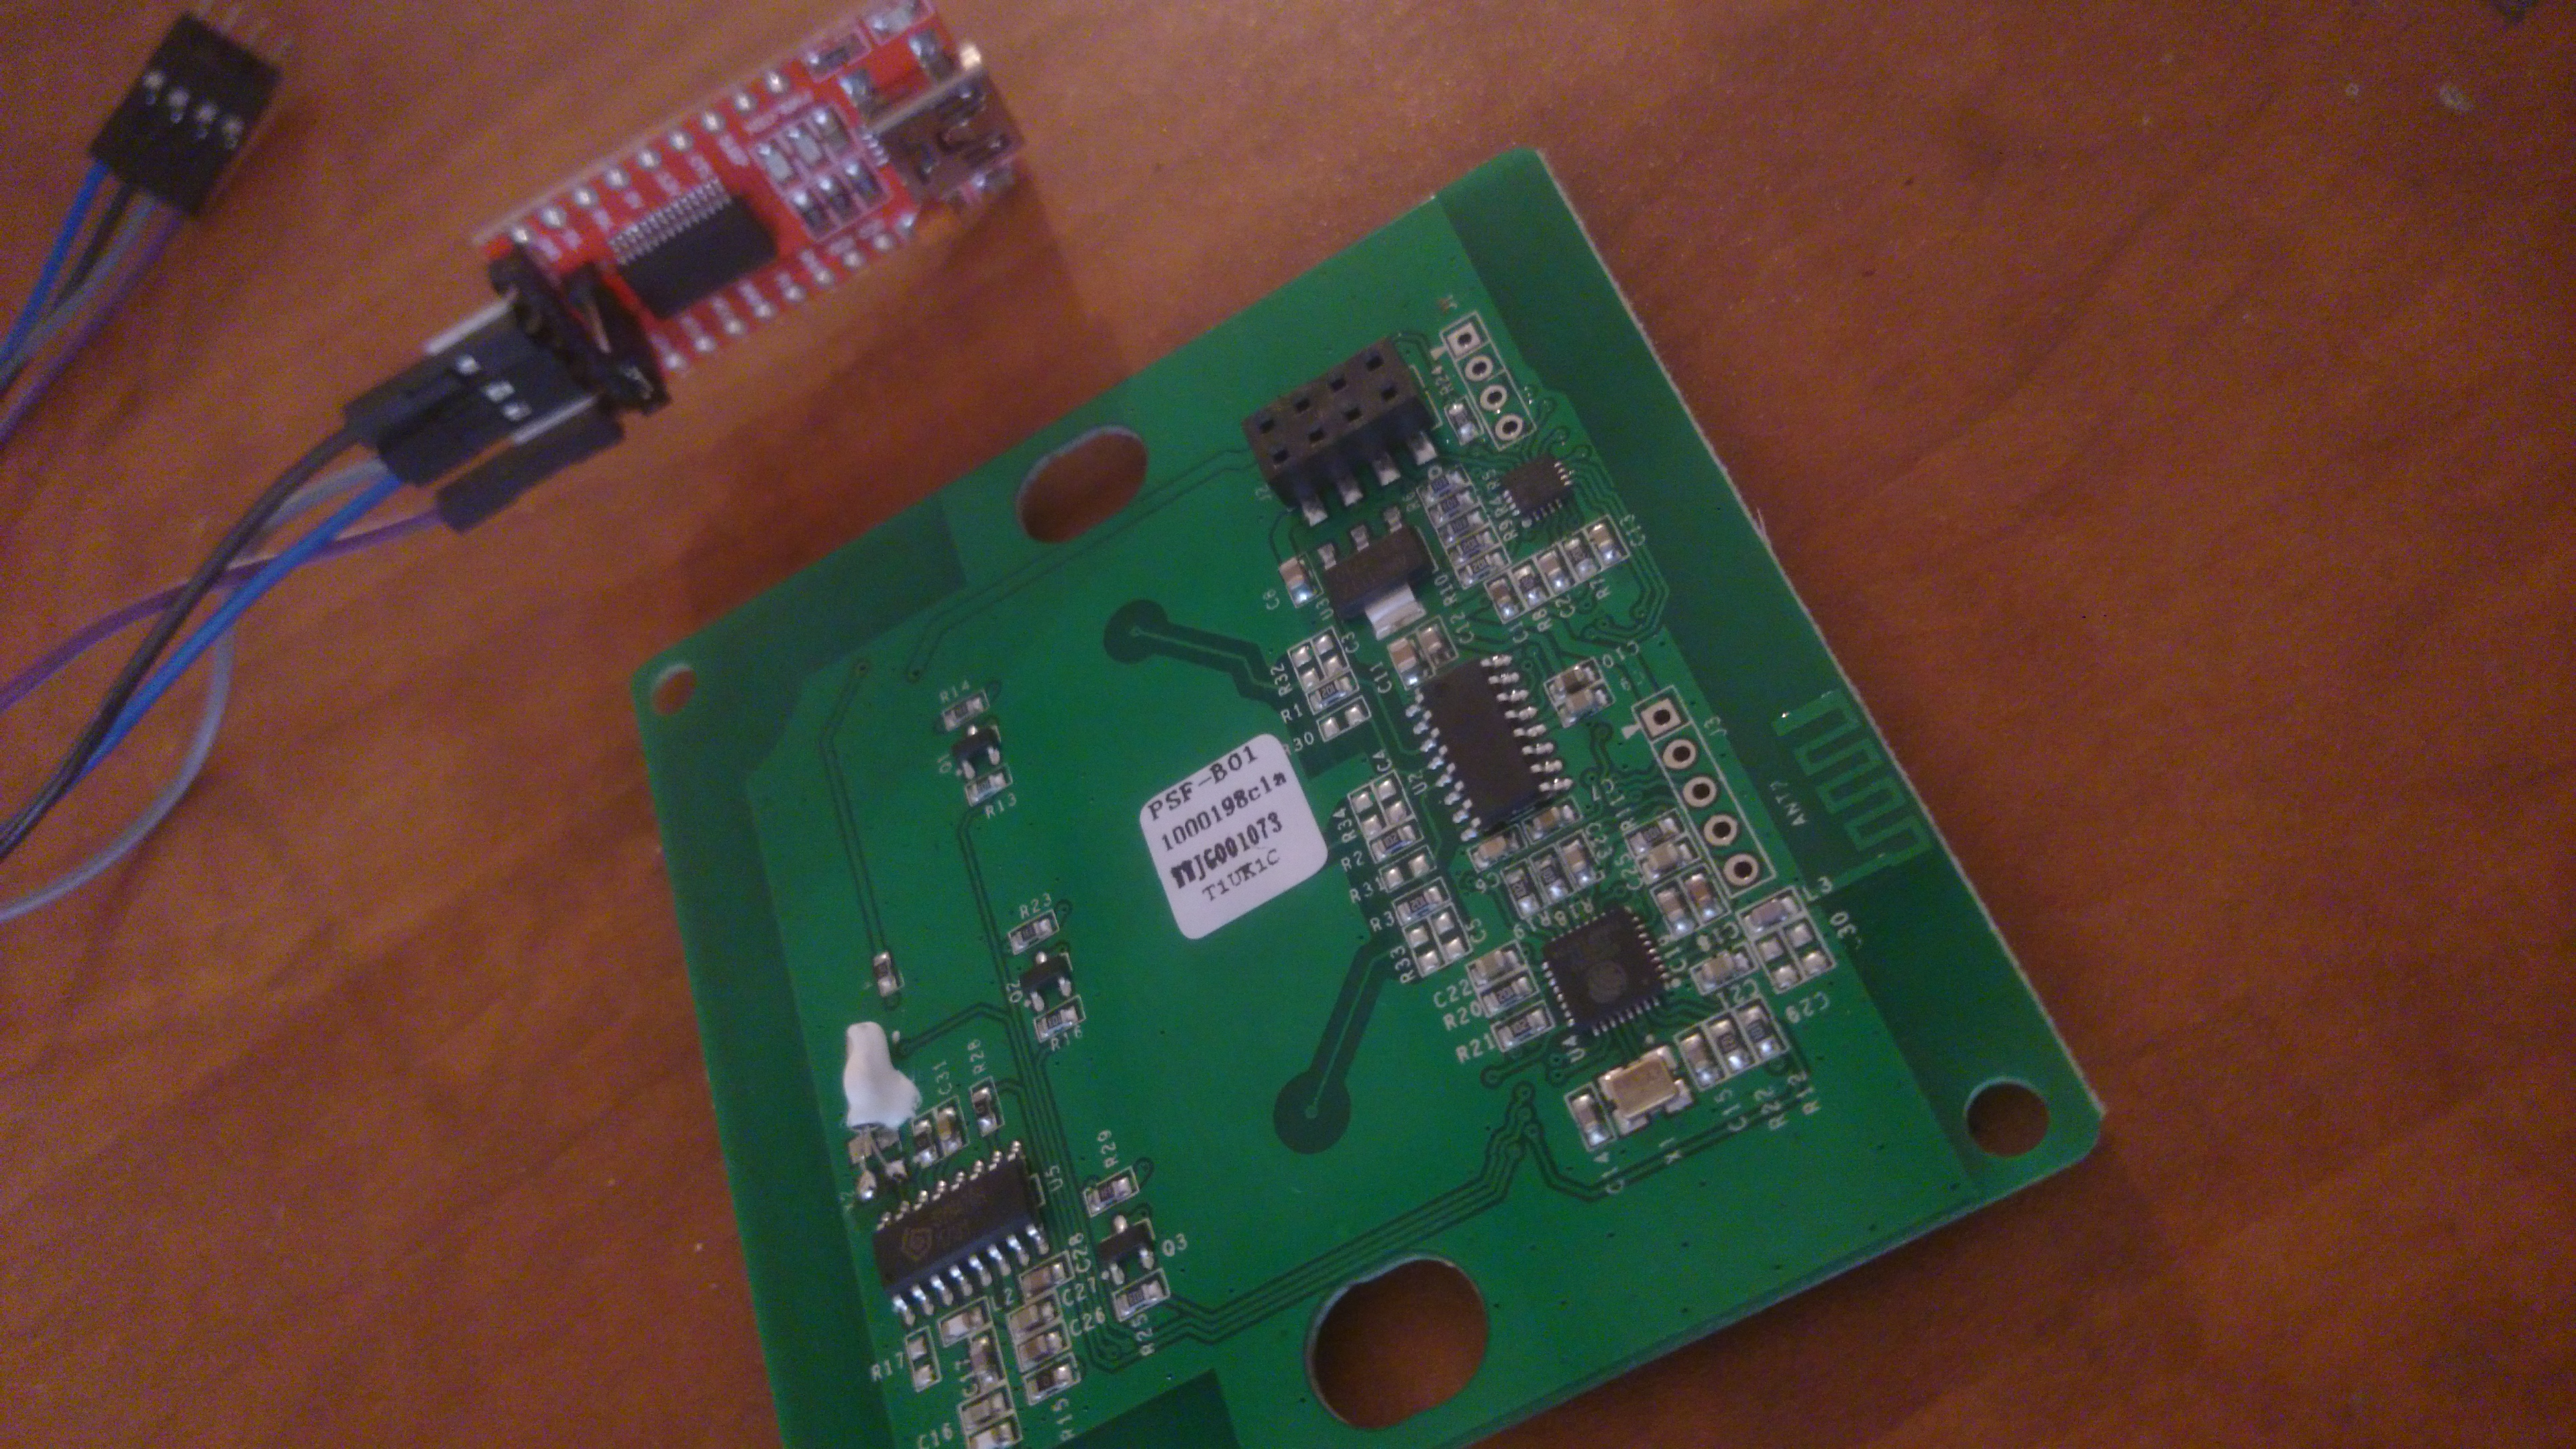 Flash Pin Locations Of Sonoff Touch T1  U00b7 Issue  1399  U00b7 Arendst  Sonoff